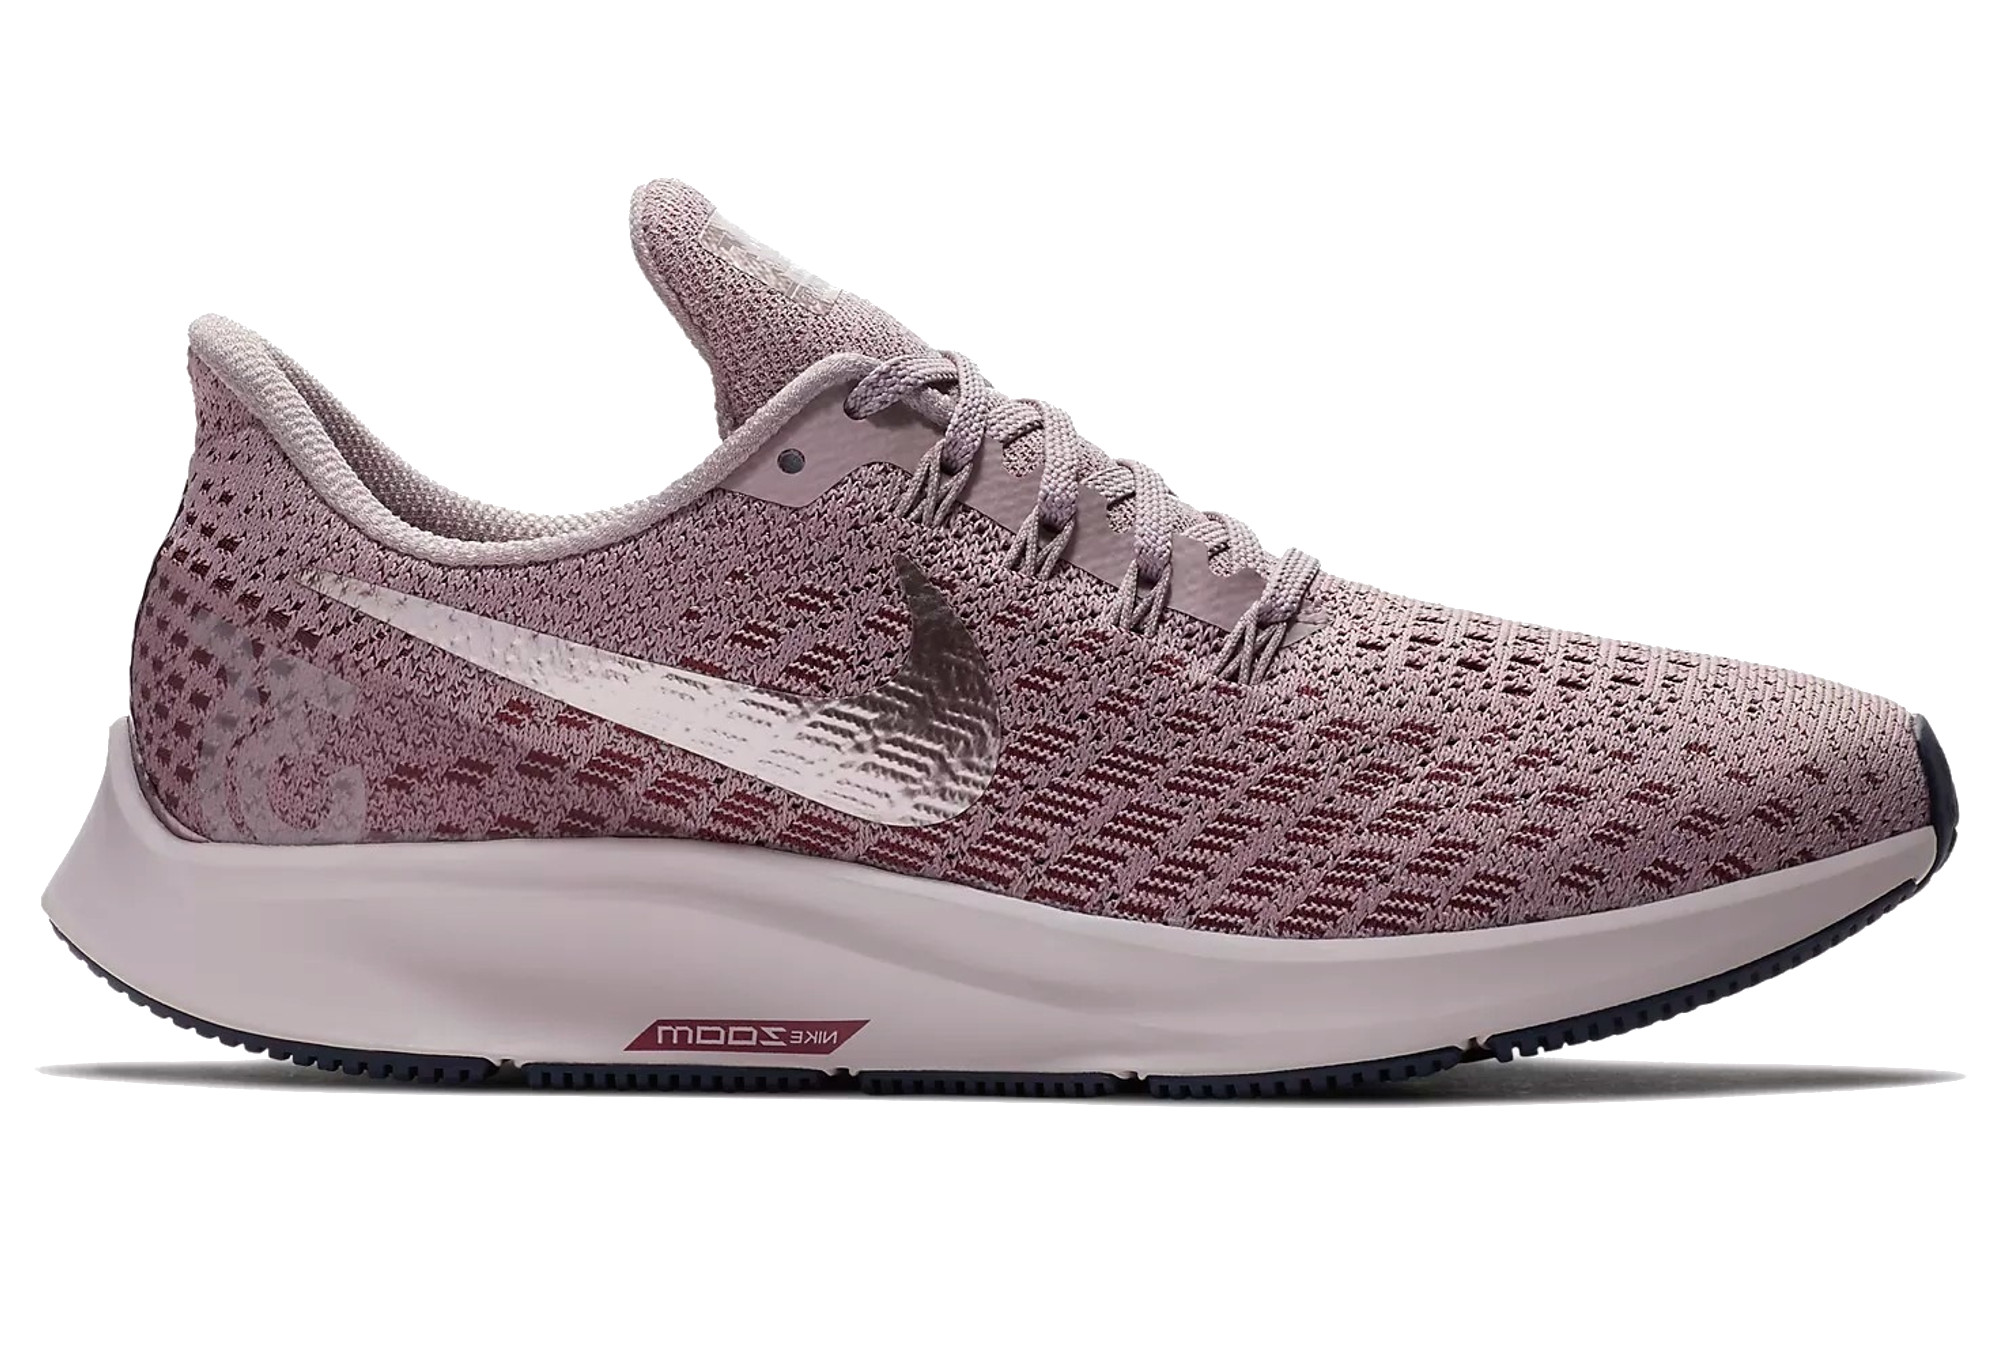 new arrivals 9736d 3c0a5 Chaussures de Running Femme Nike Air Zoom Pegasus 35 Rose